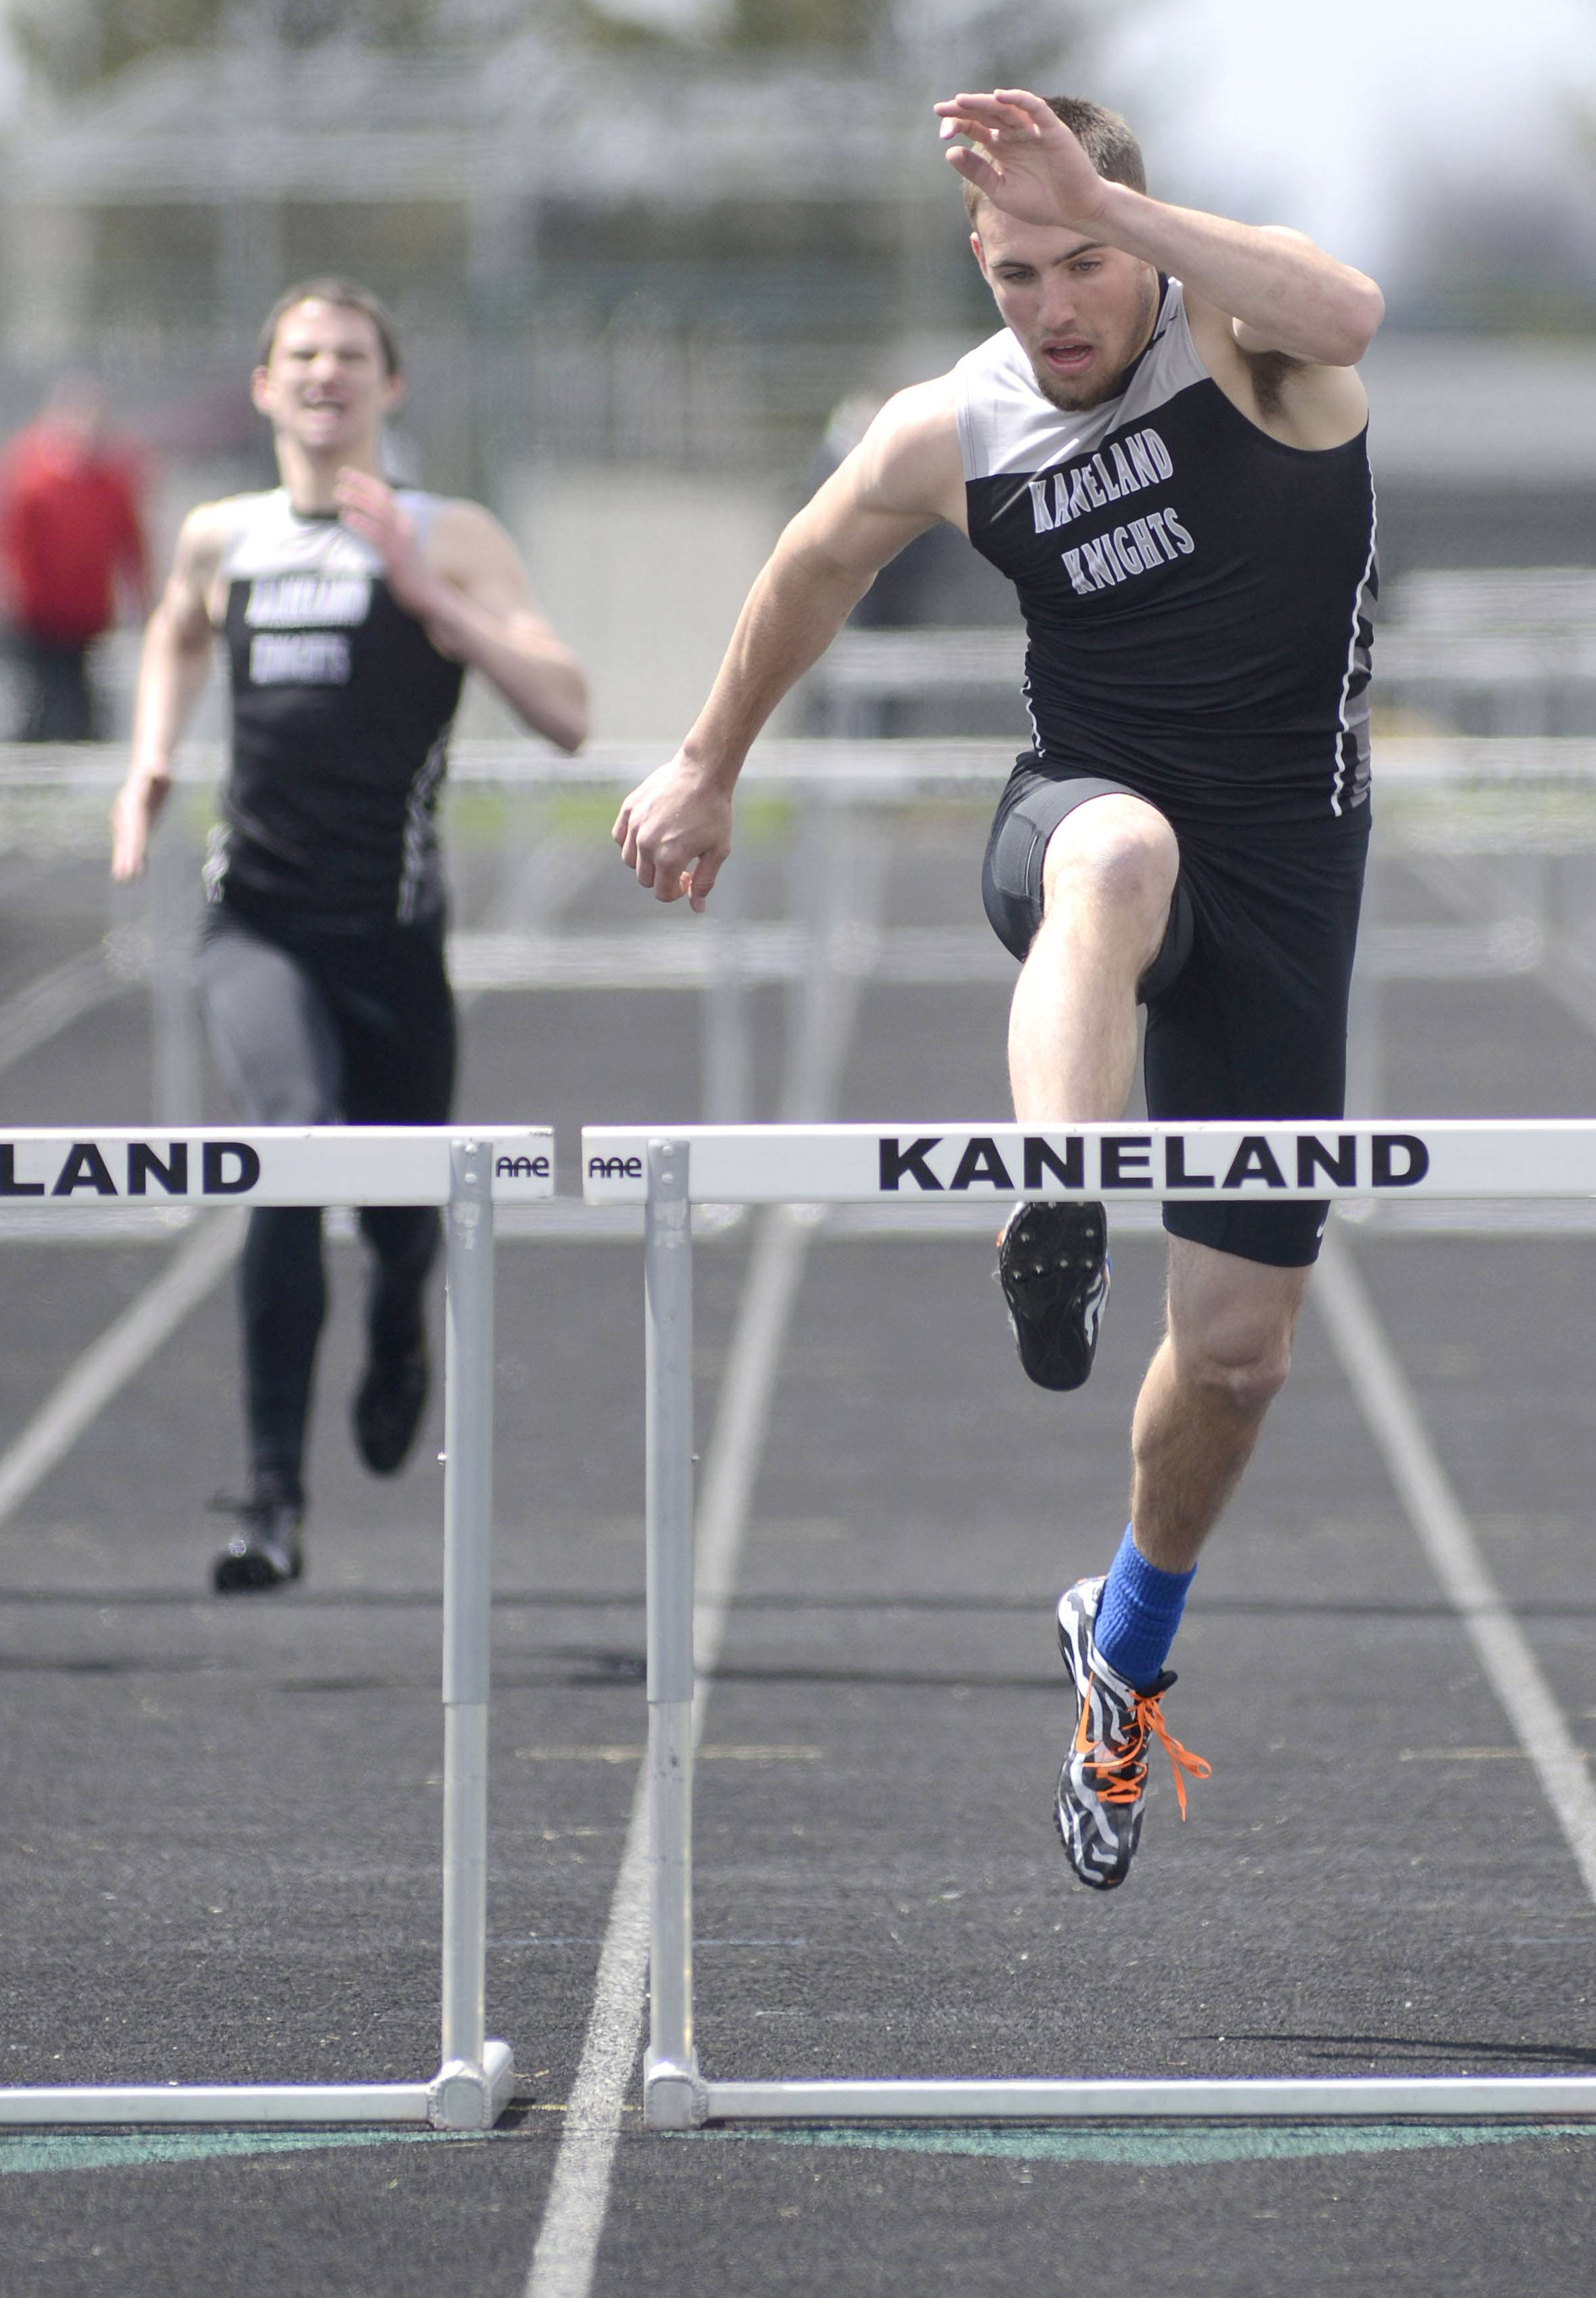 Kaneland's Dylan Nauert and his teammate Brock Robertson have been working together to help both improve their times.